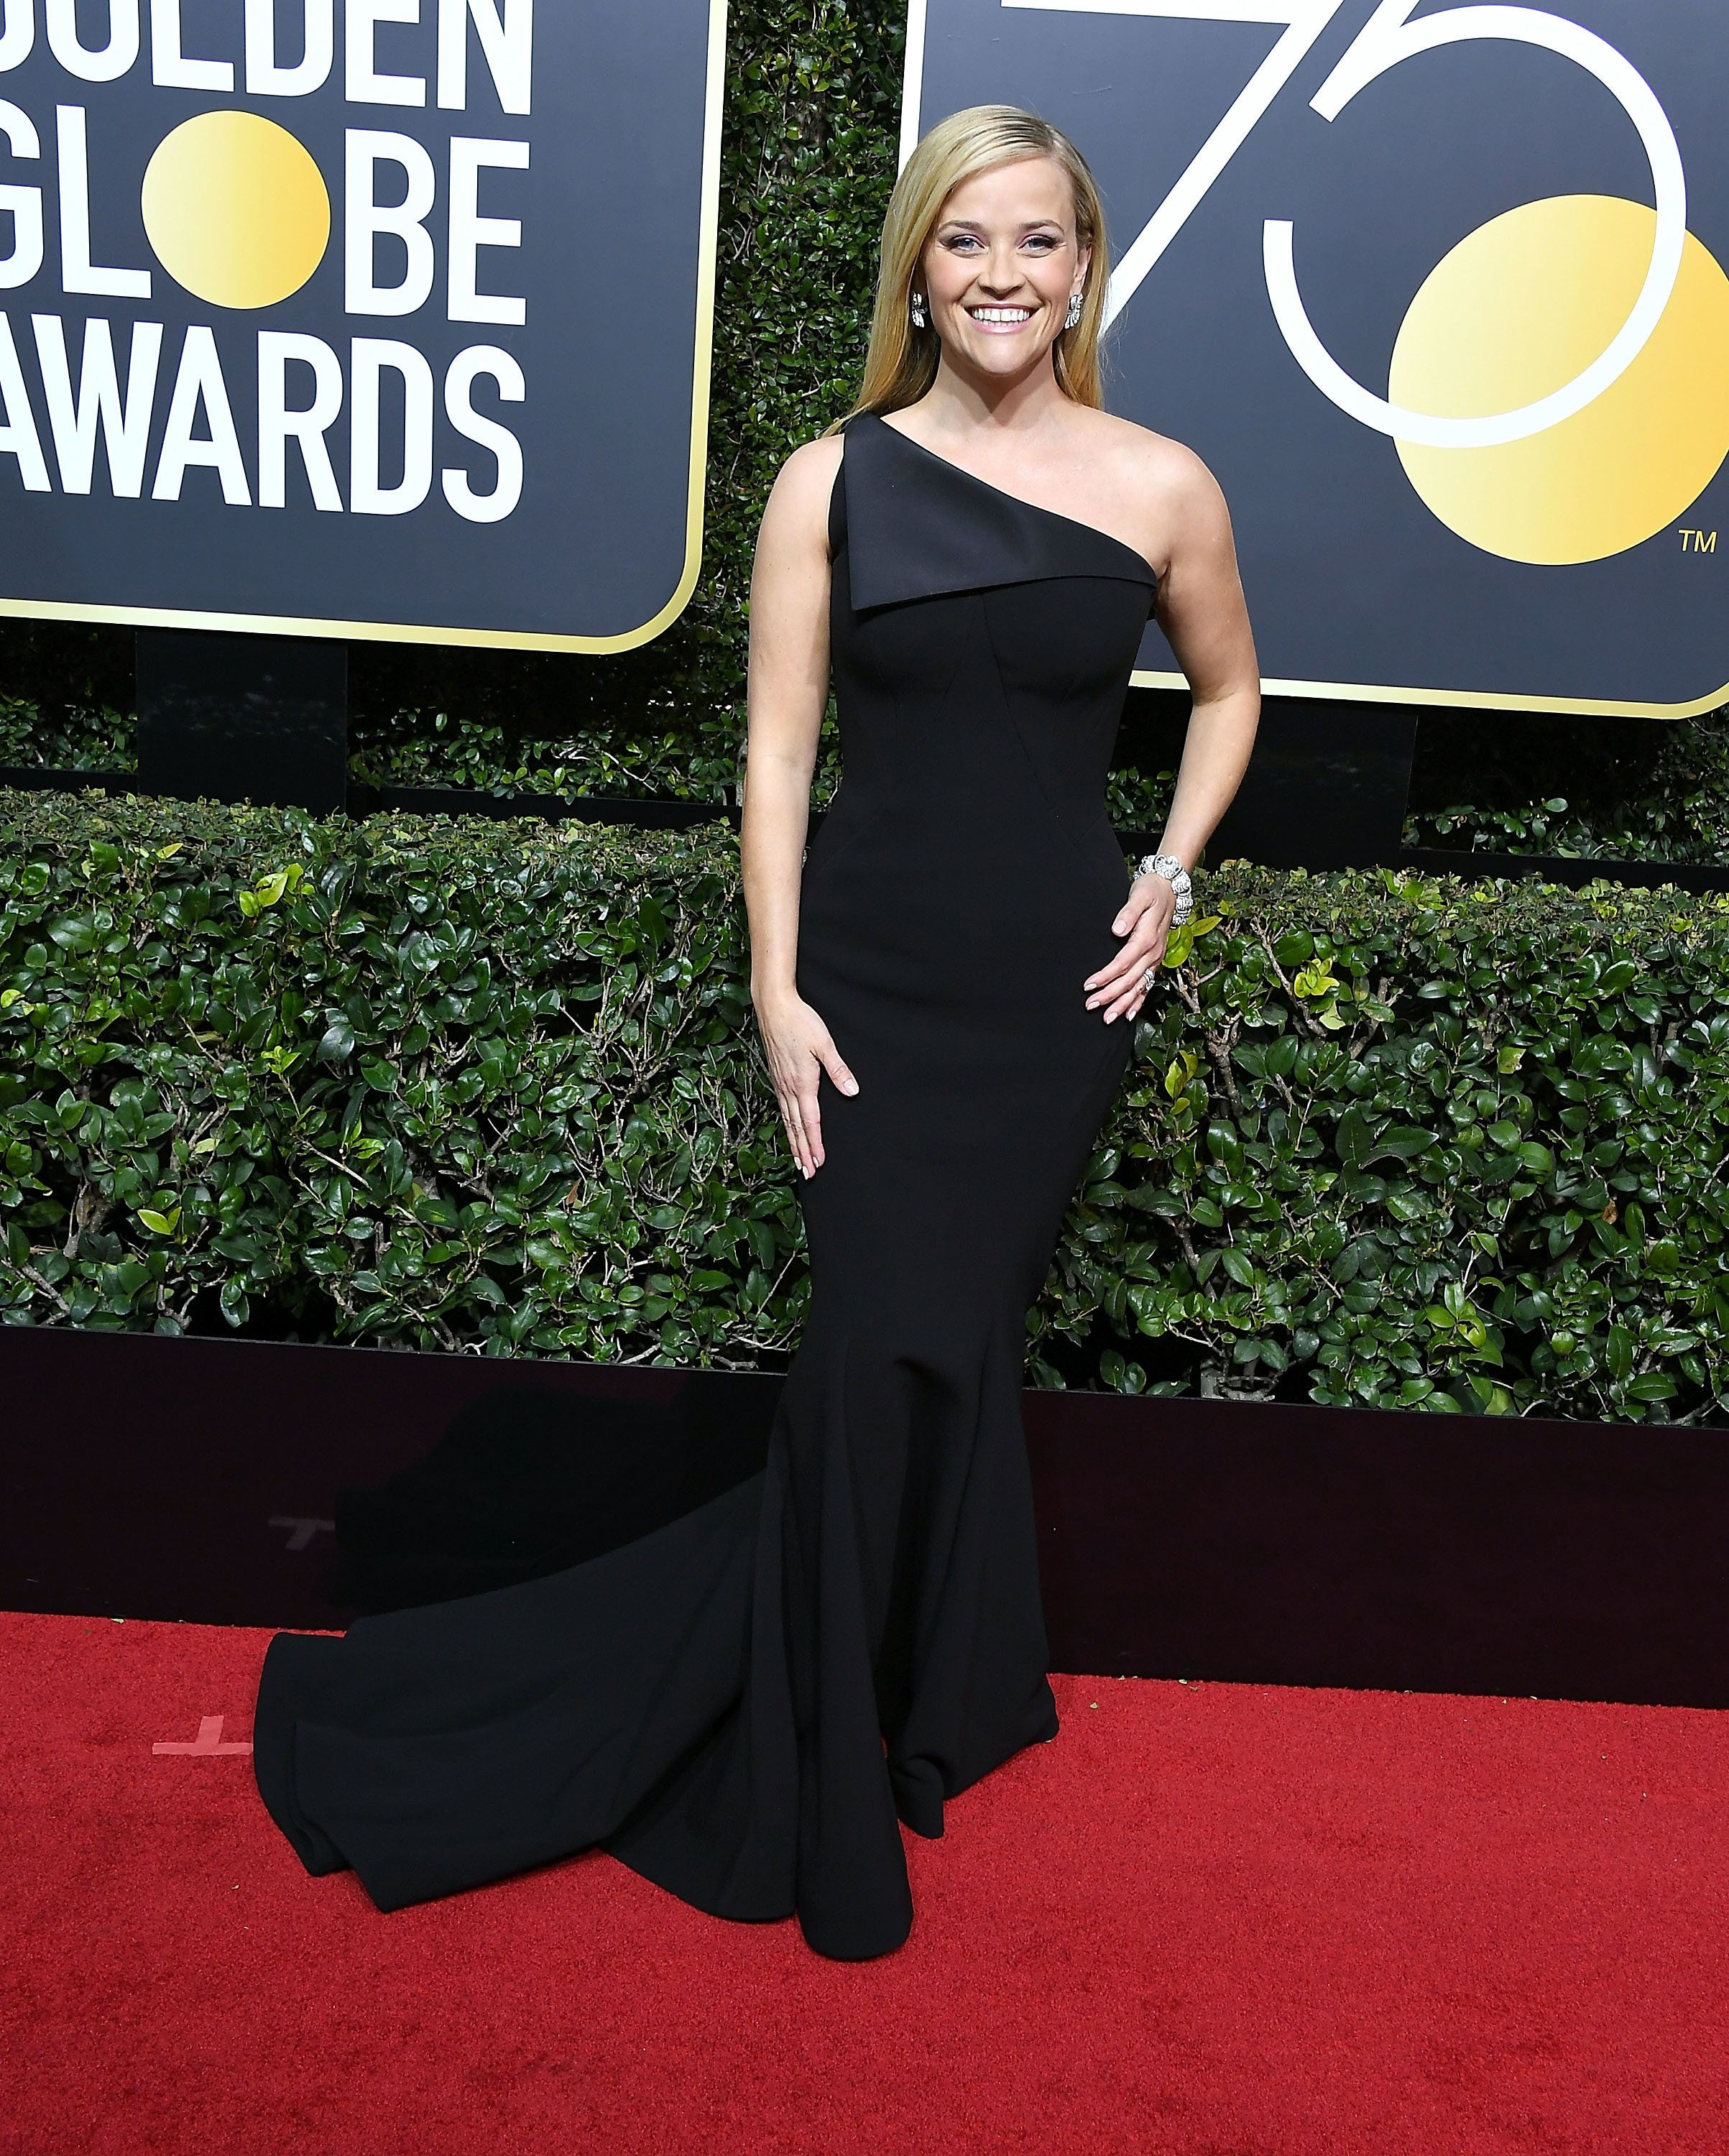 You Could Own A Golden Globes Dress And Support A Good